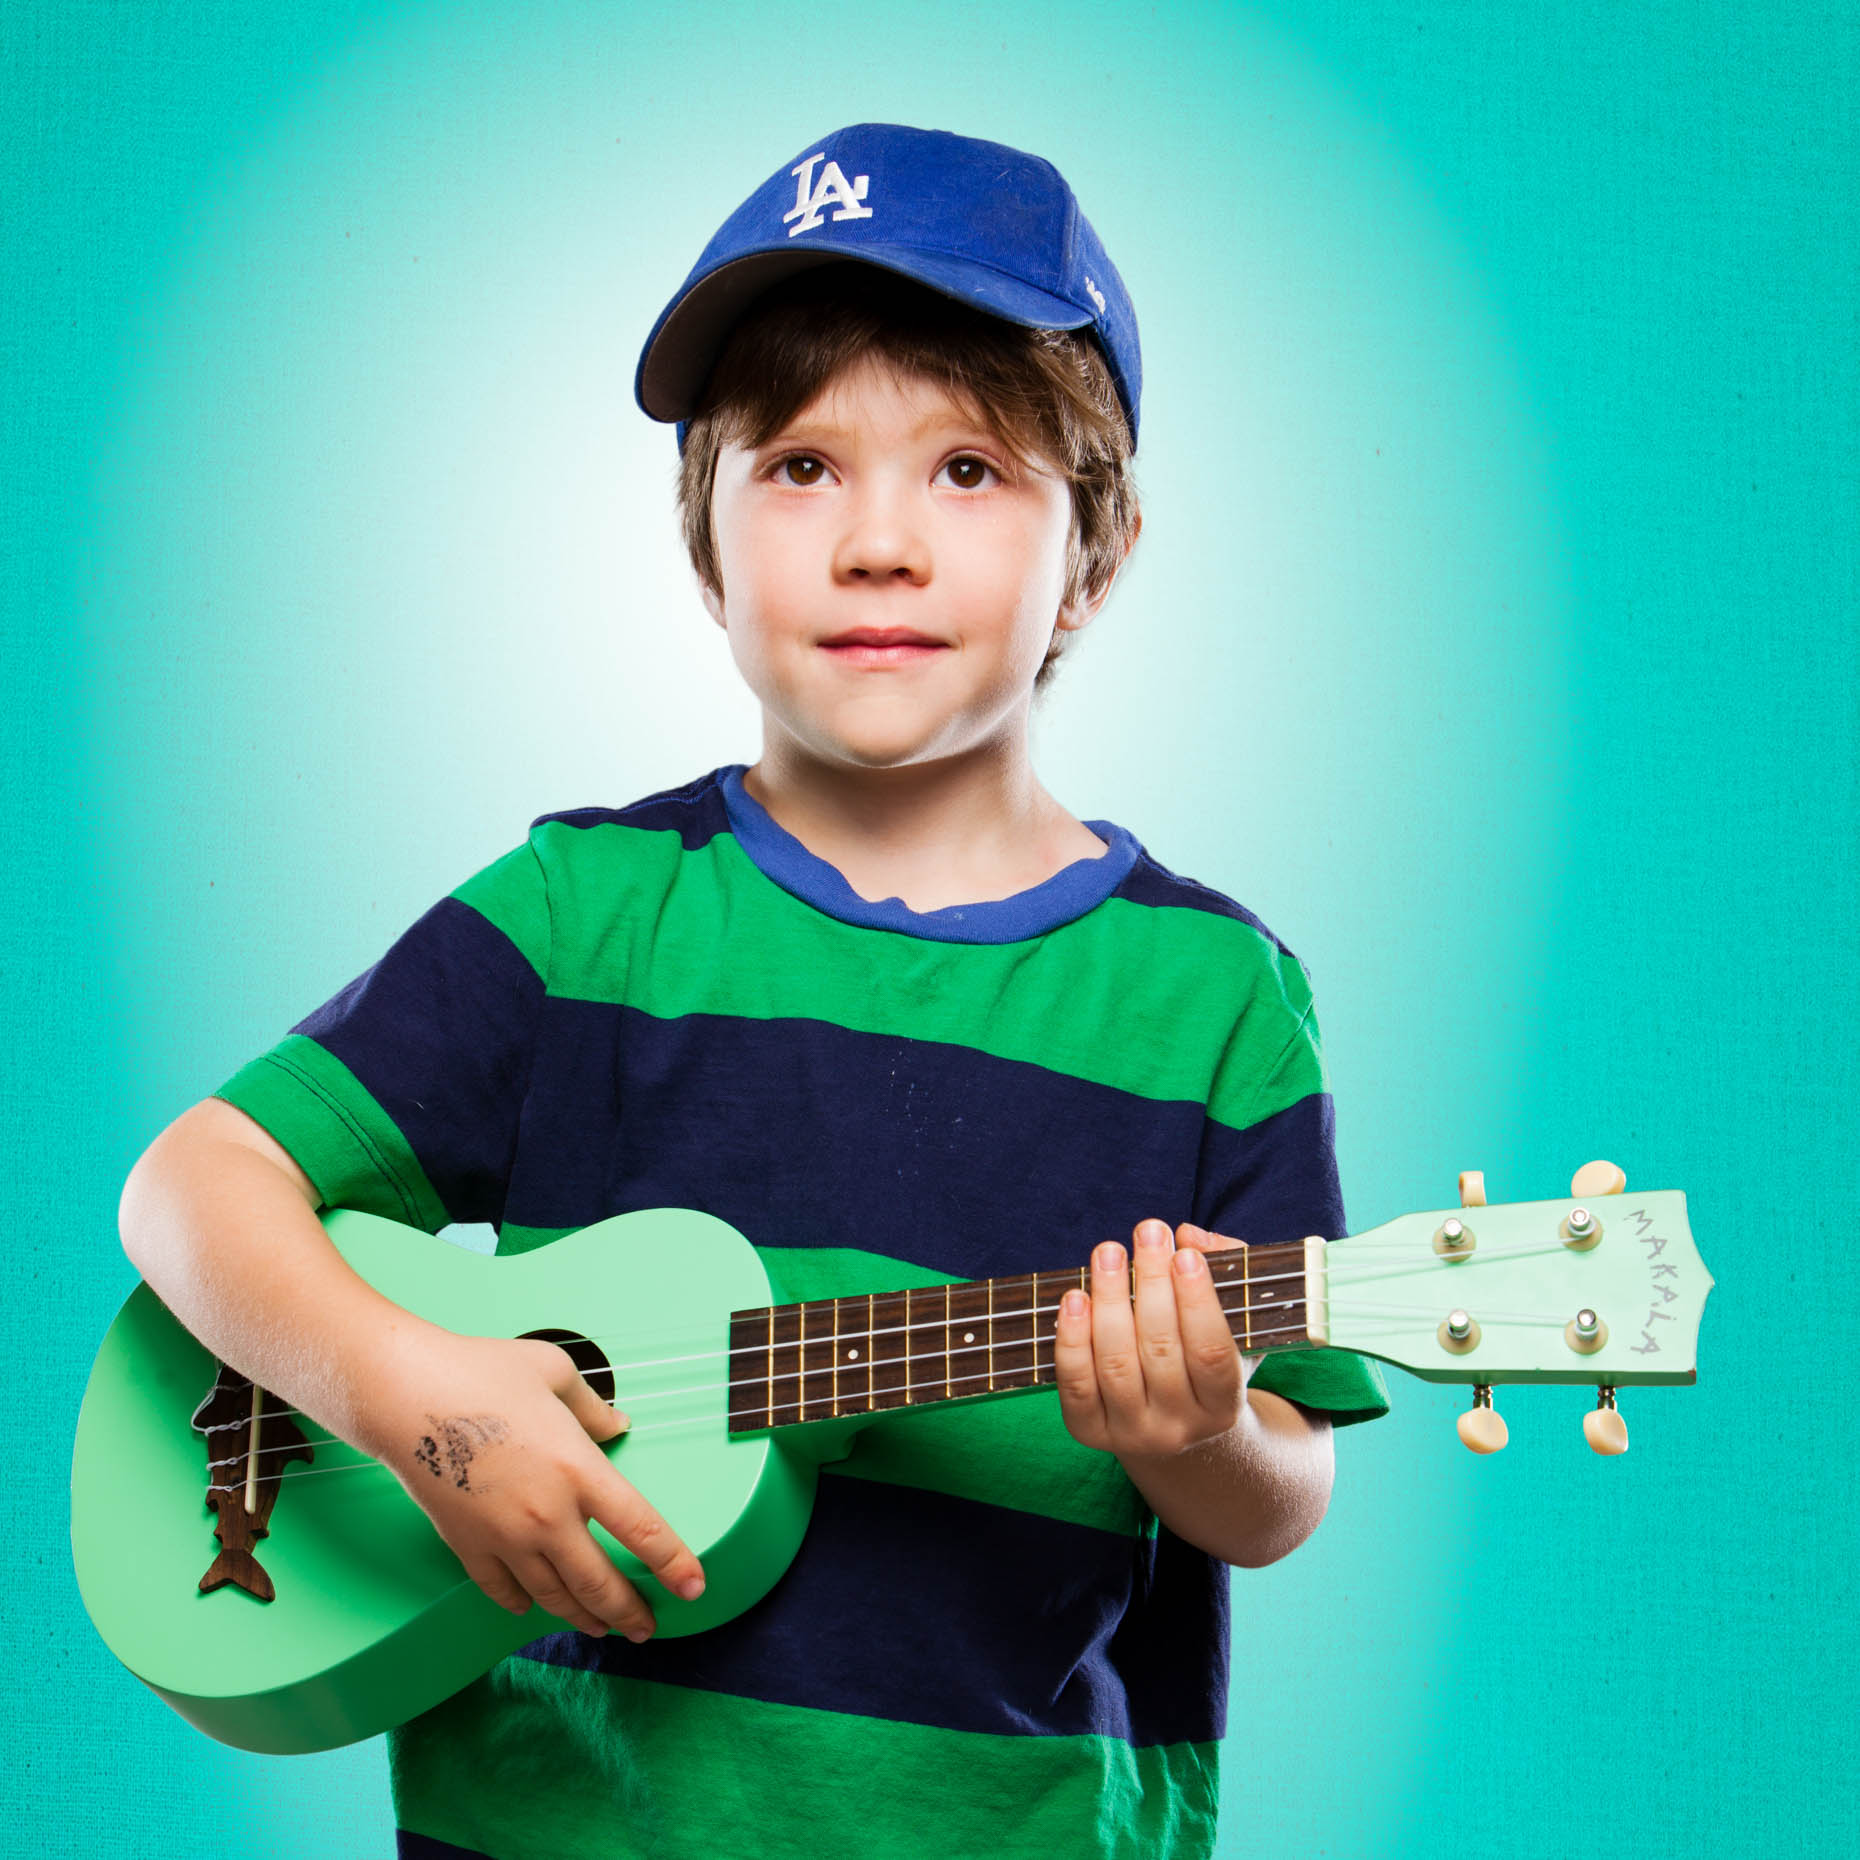 A studio portrait of a 6 year old boy, who has an interest in playing his Ukulele. This portrait was created by Steve Glass, owner of Glass Photography Portrait Studio. In all of their portraits they are looking to uncover the unique interests, creativity and beauty that each person creates. This deepest portion of a person that is created in the image of God, the Imago Dei. Steve Glass, a professional portrait photographer of Glass Photography services the men, women, children, kids, families, business and people of Fort Collins, Windsor, Loveland, Wellington and the surrounding areas of Northern Colorado and southern Wyoming (and sometime Denver), through professional photography by creating timeless portraits and heirloom prints, ranging from corporate portraits, corporate headshots, environmental portraits, editorial portraits, and beauty portraits.